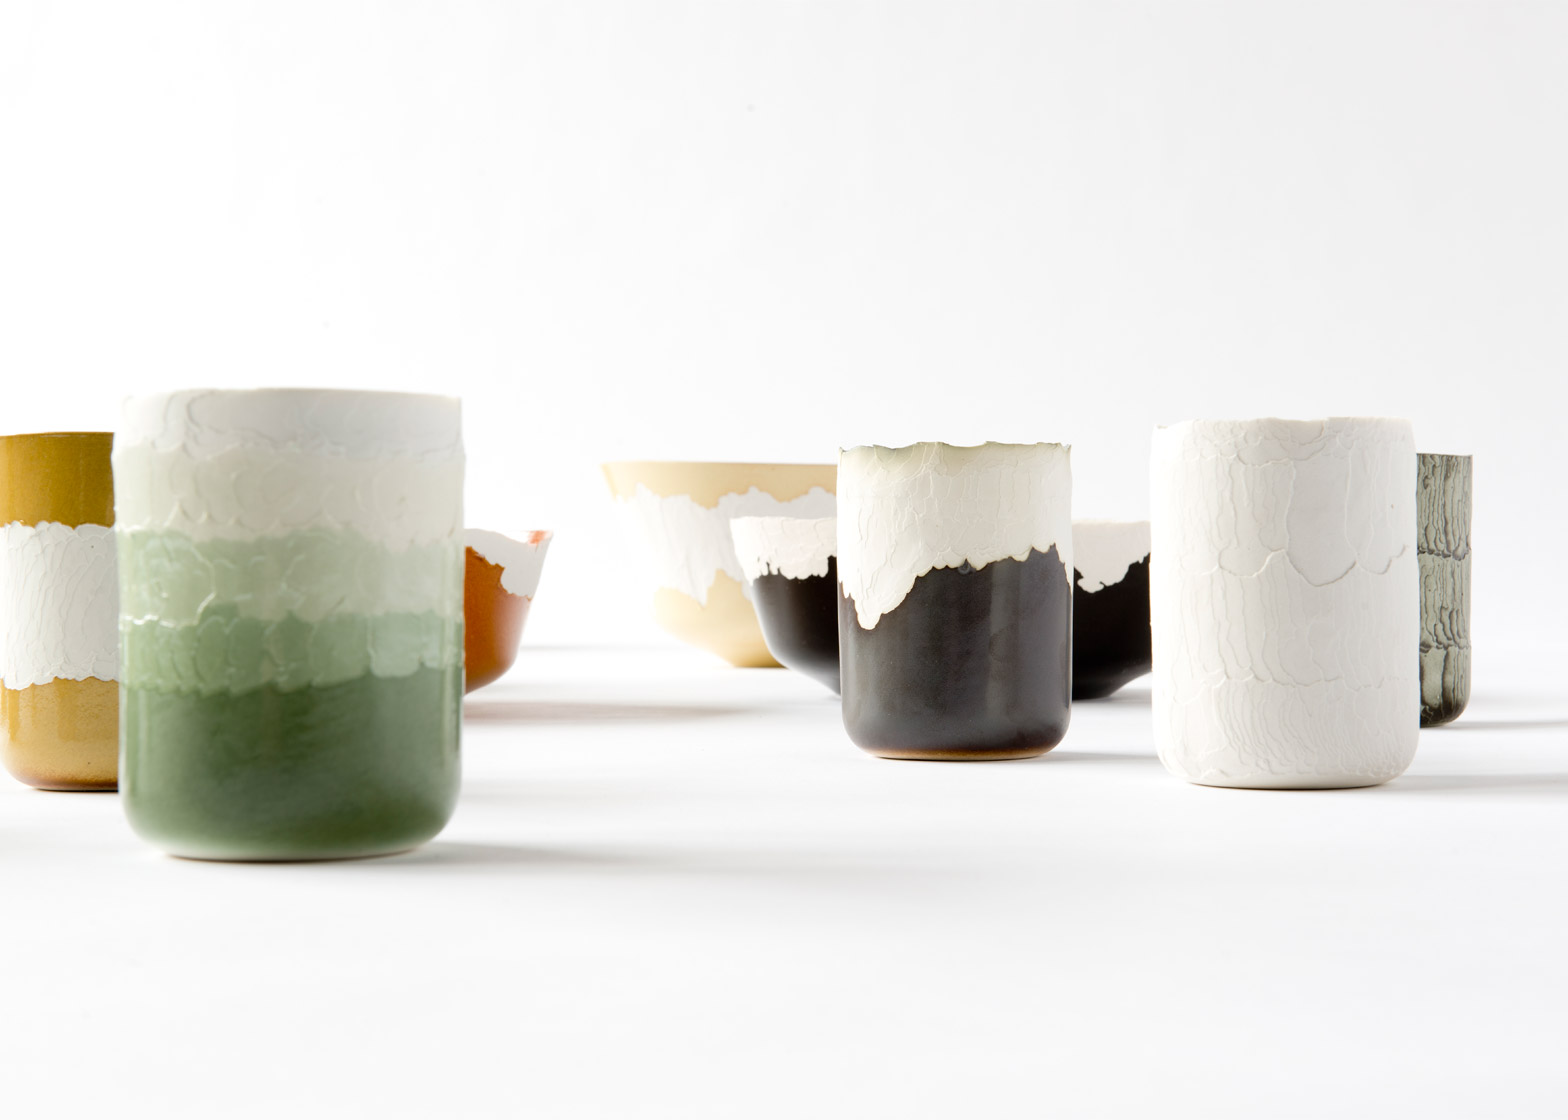 Erosion Set by Studio Floris Wubben